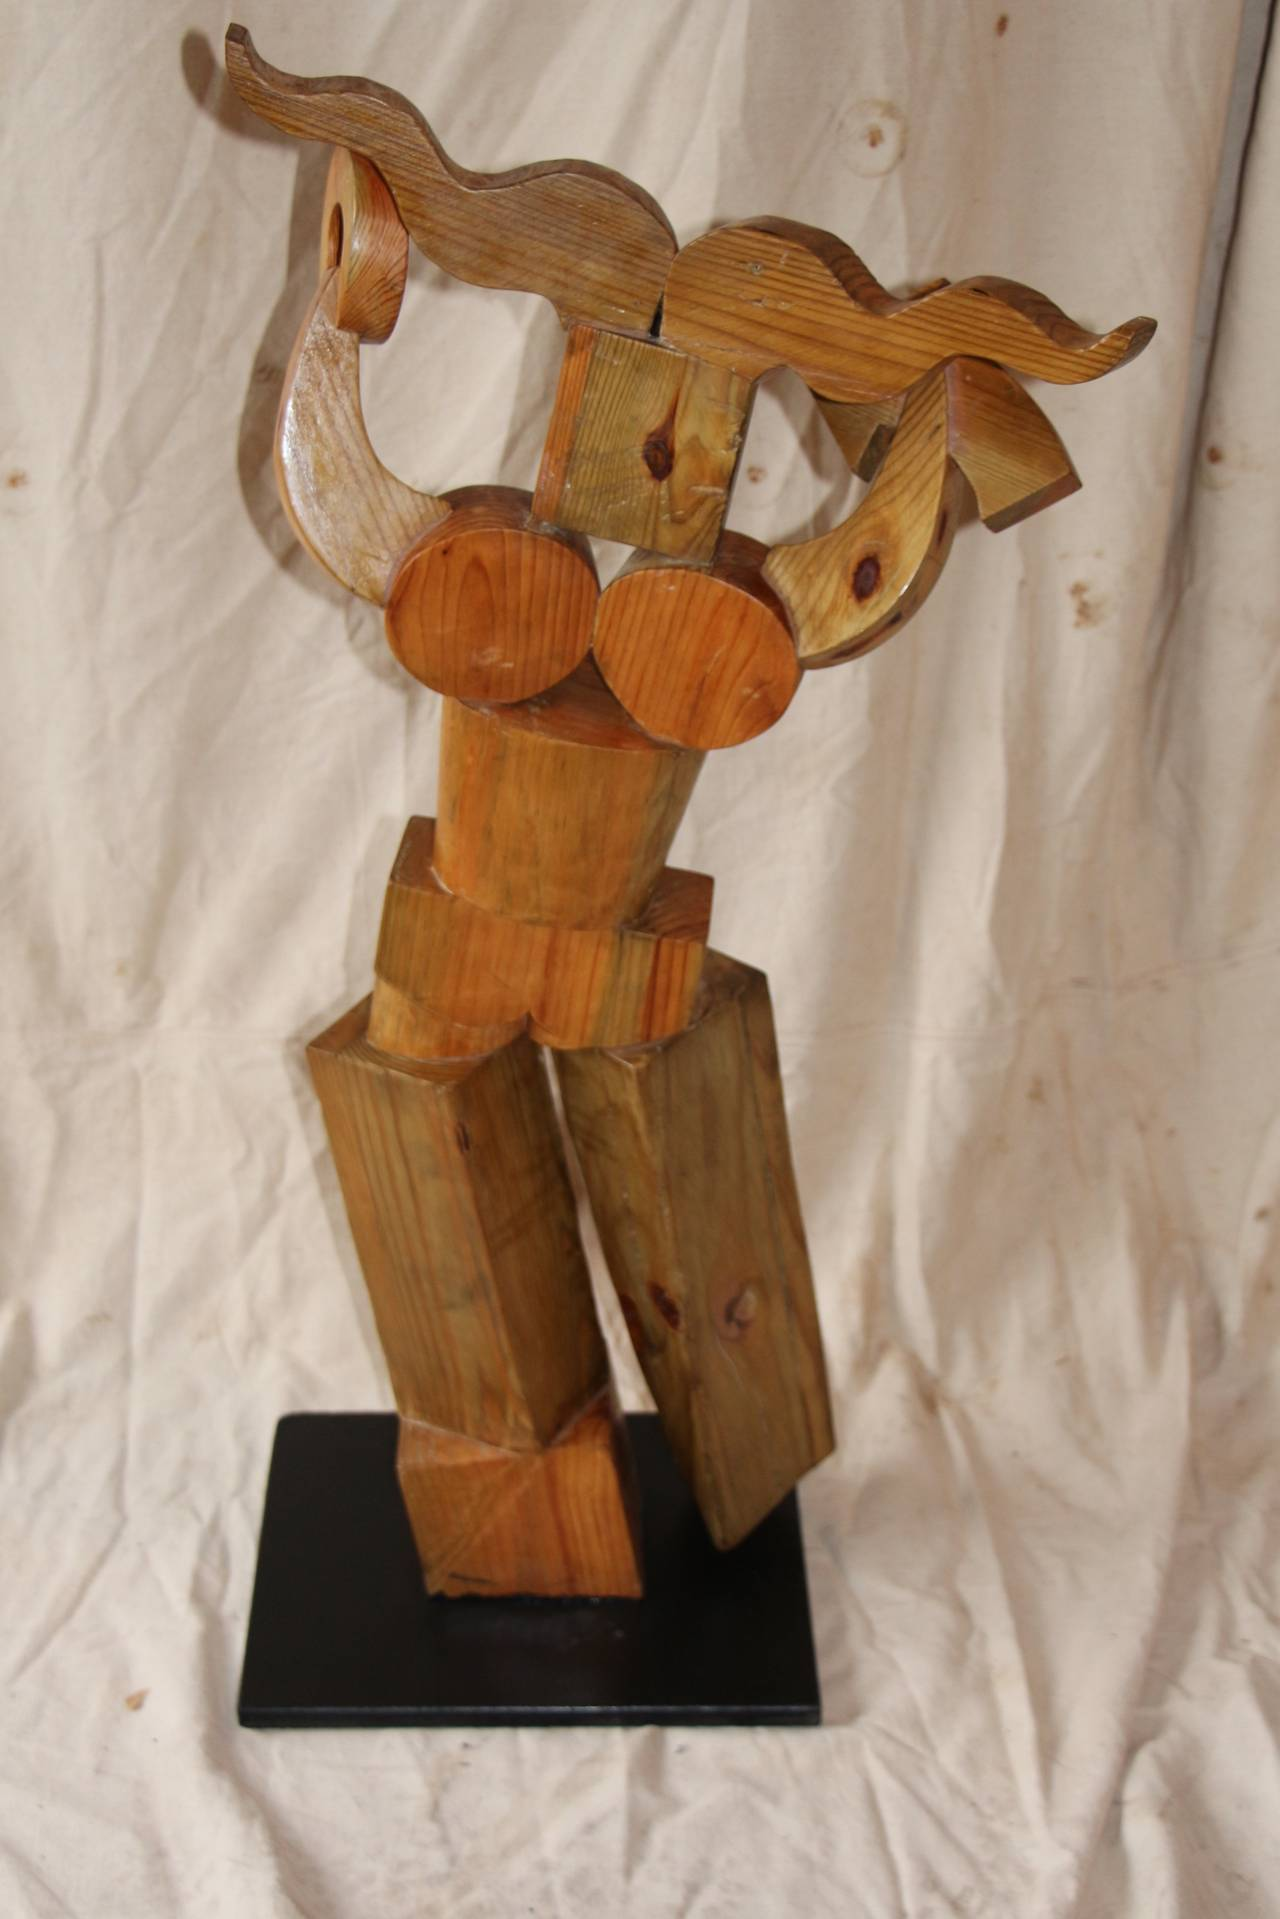 Whimsical Wood Sculpture by Noted Artist Fred Schumm In Good Condition For Sale In Palm Springs, CA